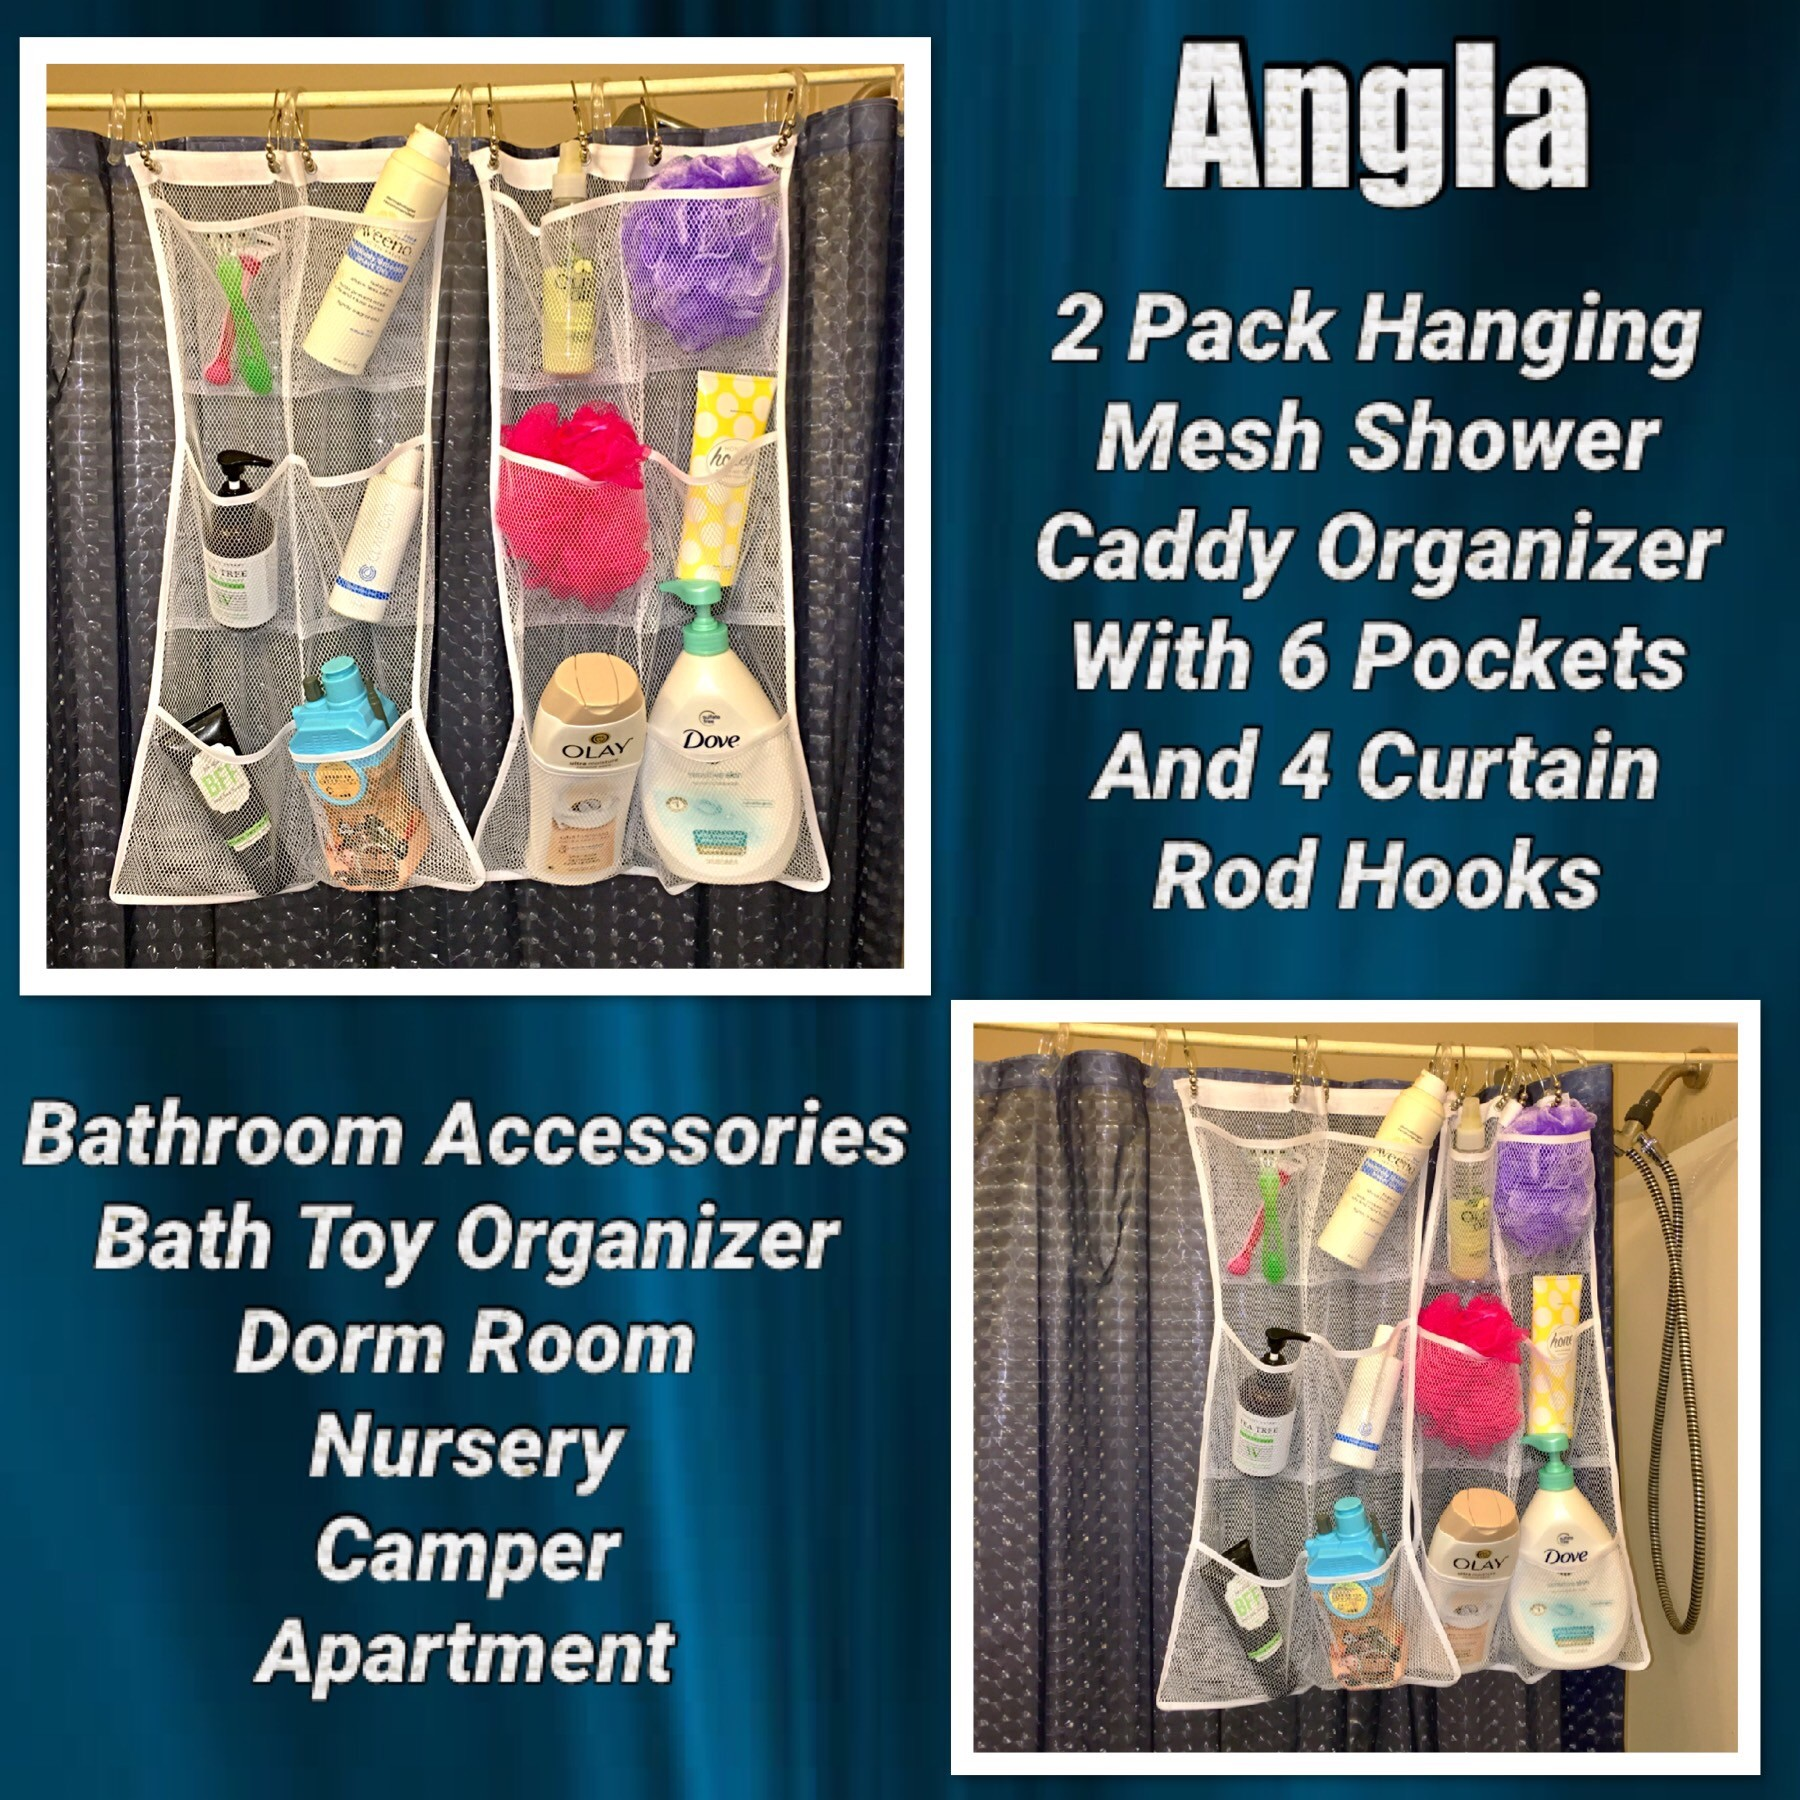 2 Pack Hanging Mesh Shower Caddy Organizer With 6 Pockets, Shower Curtain Rod/Liner Hooks Bathroom Wall Door Organization, Dorm Space Saving, Bathroom Accessories, Bath Toy Organizer Kids With 4 Rings - By -Angla